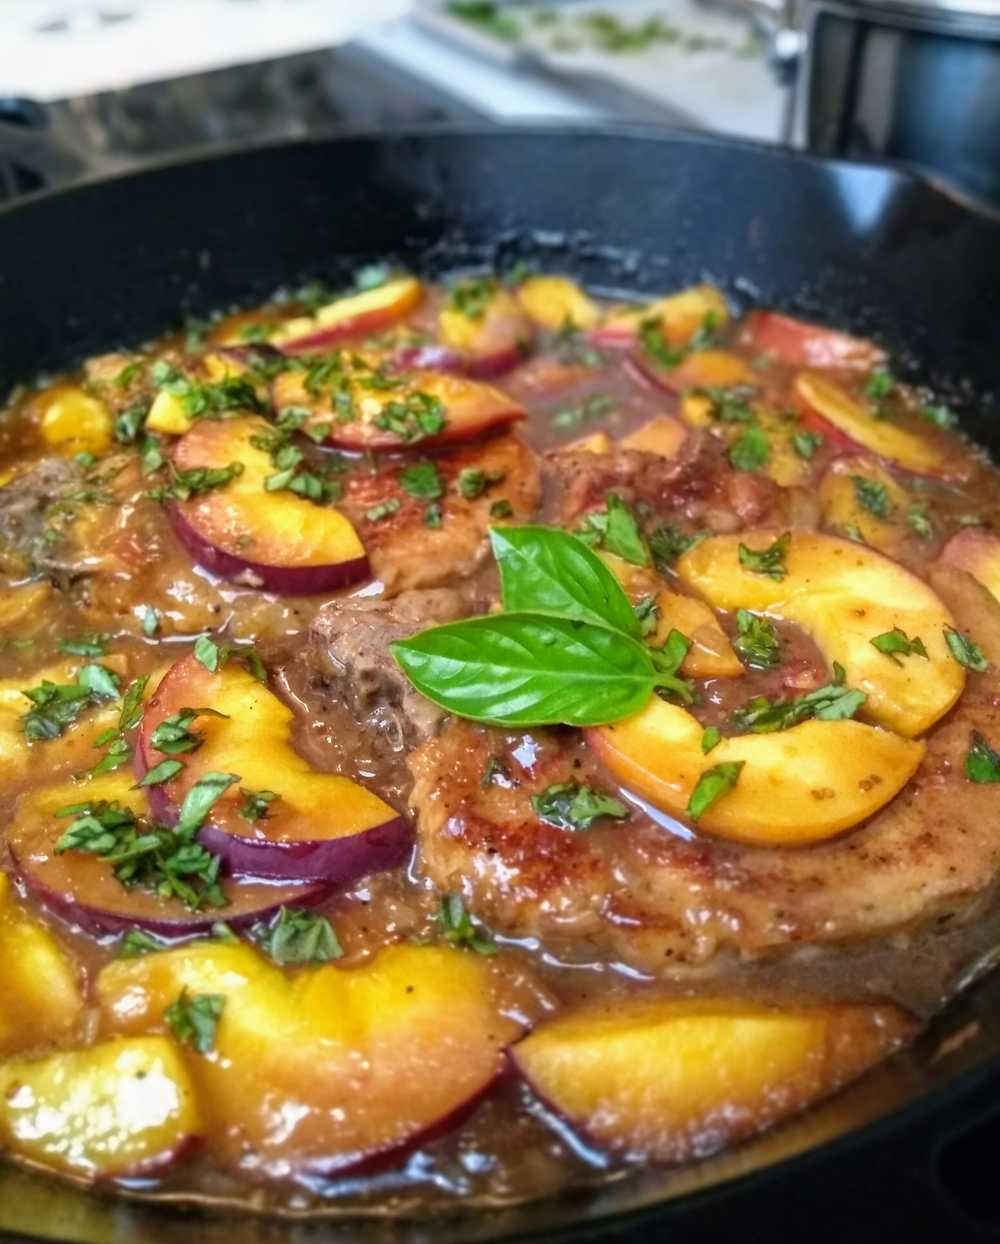 Braised Pork Chops with Peach and Basil